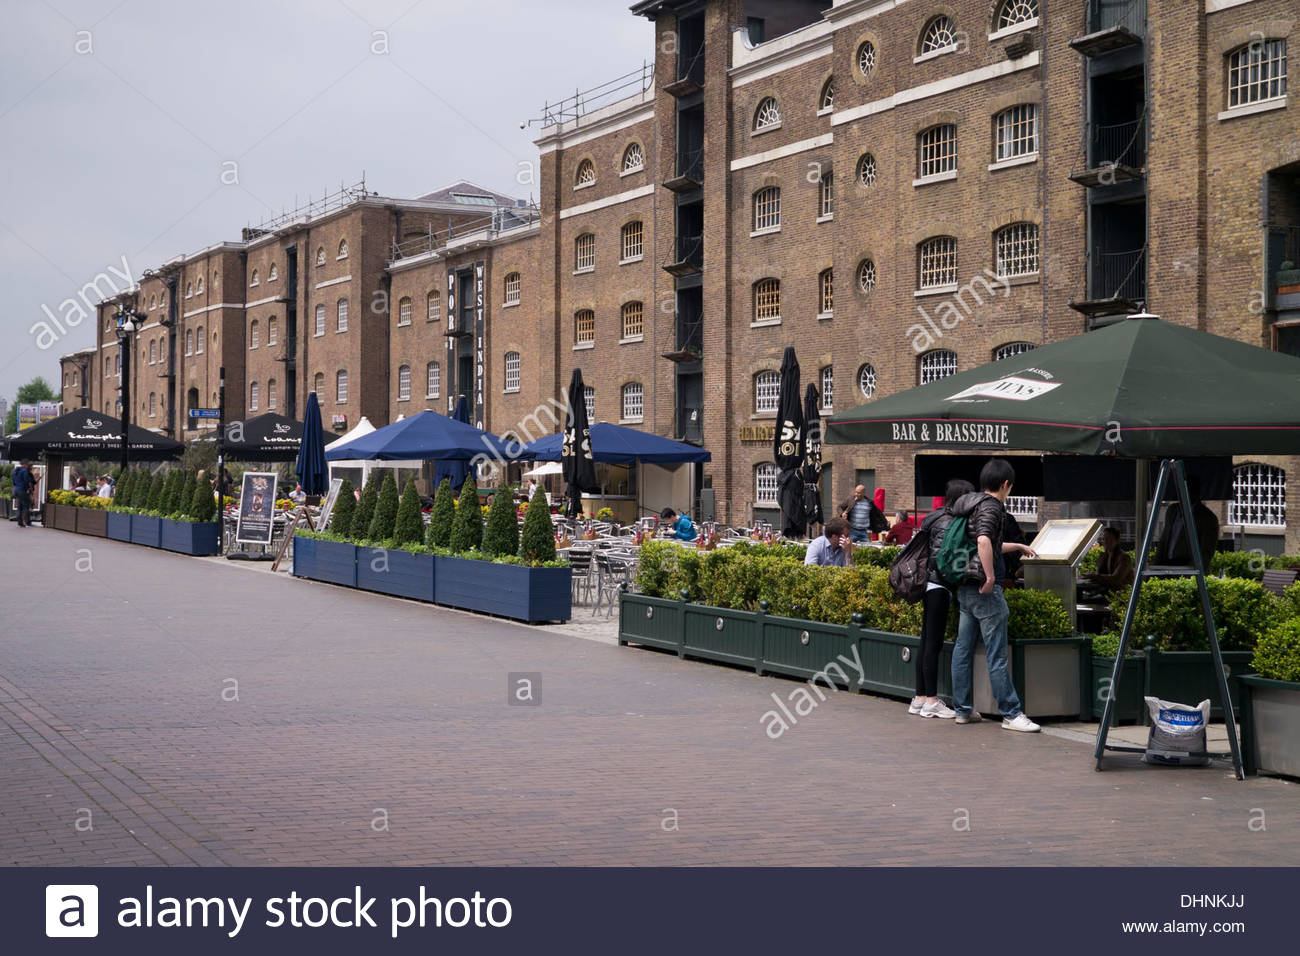 Cafes and restaurants fronting West India Quay: London. - Stock Image